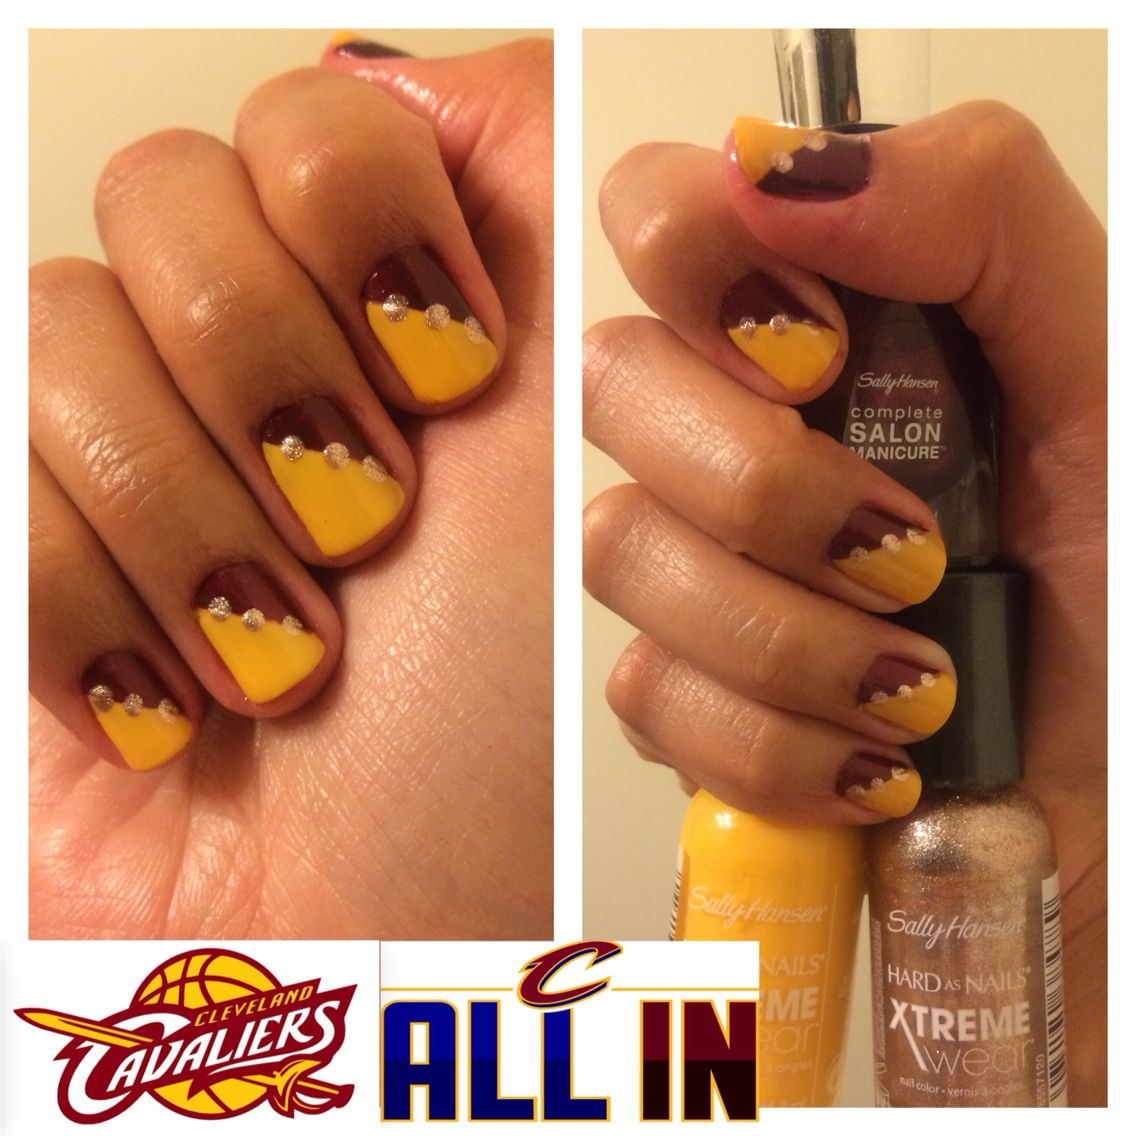 Nails inspired by Cleveland Cavaliers! | Nails | Pinterest ...